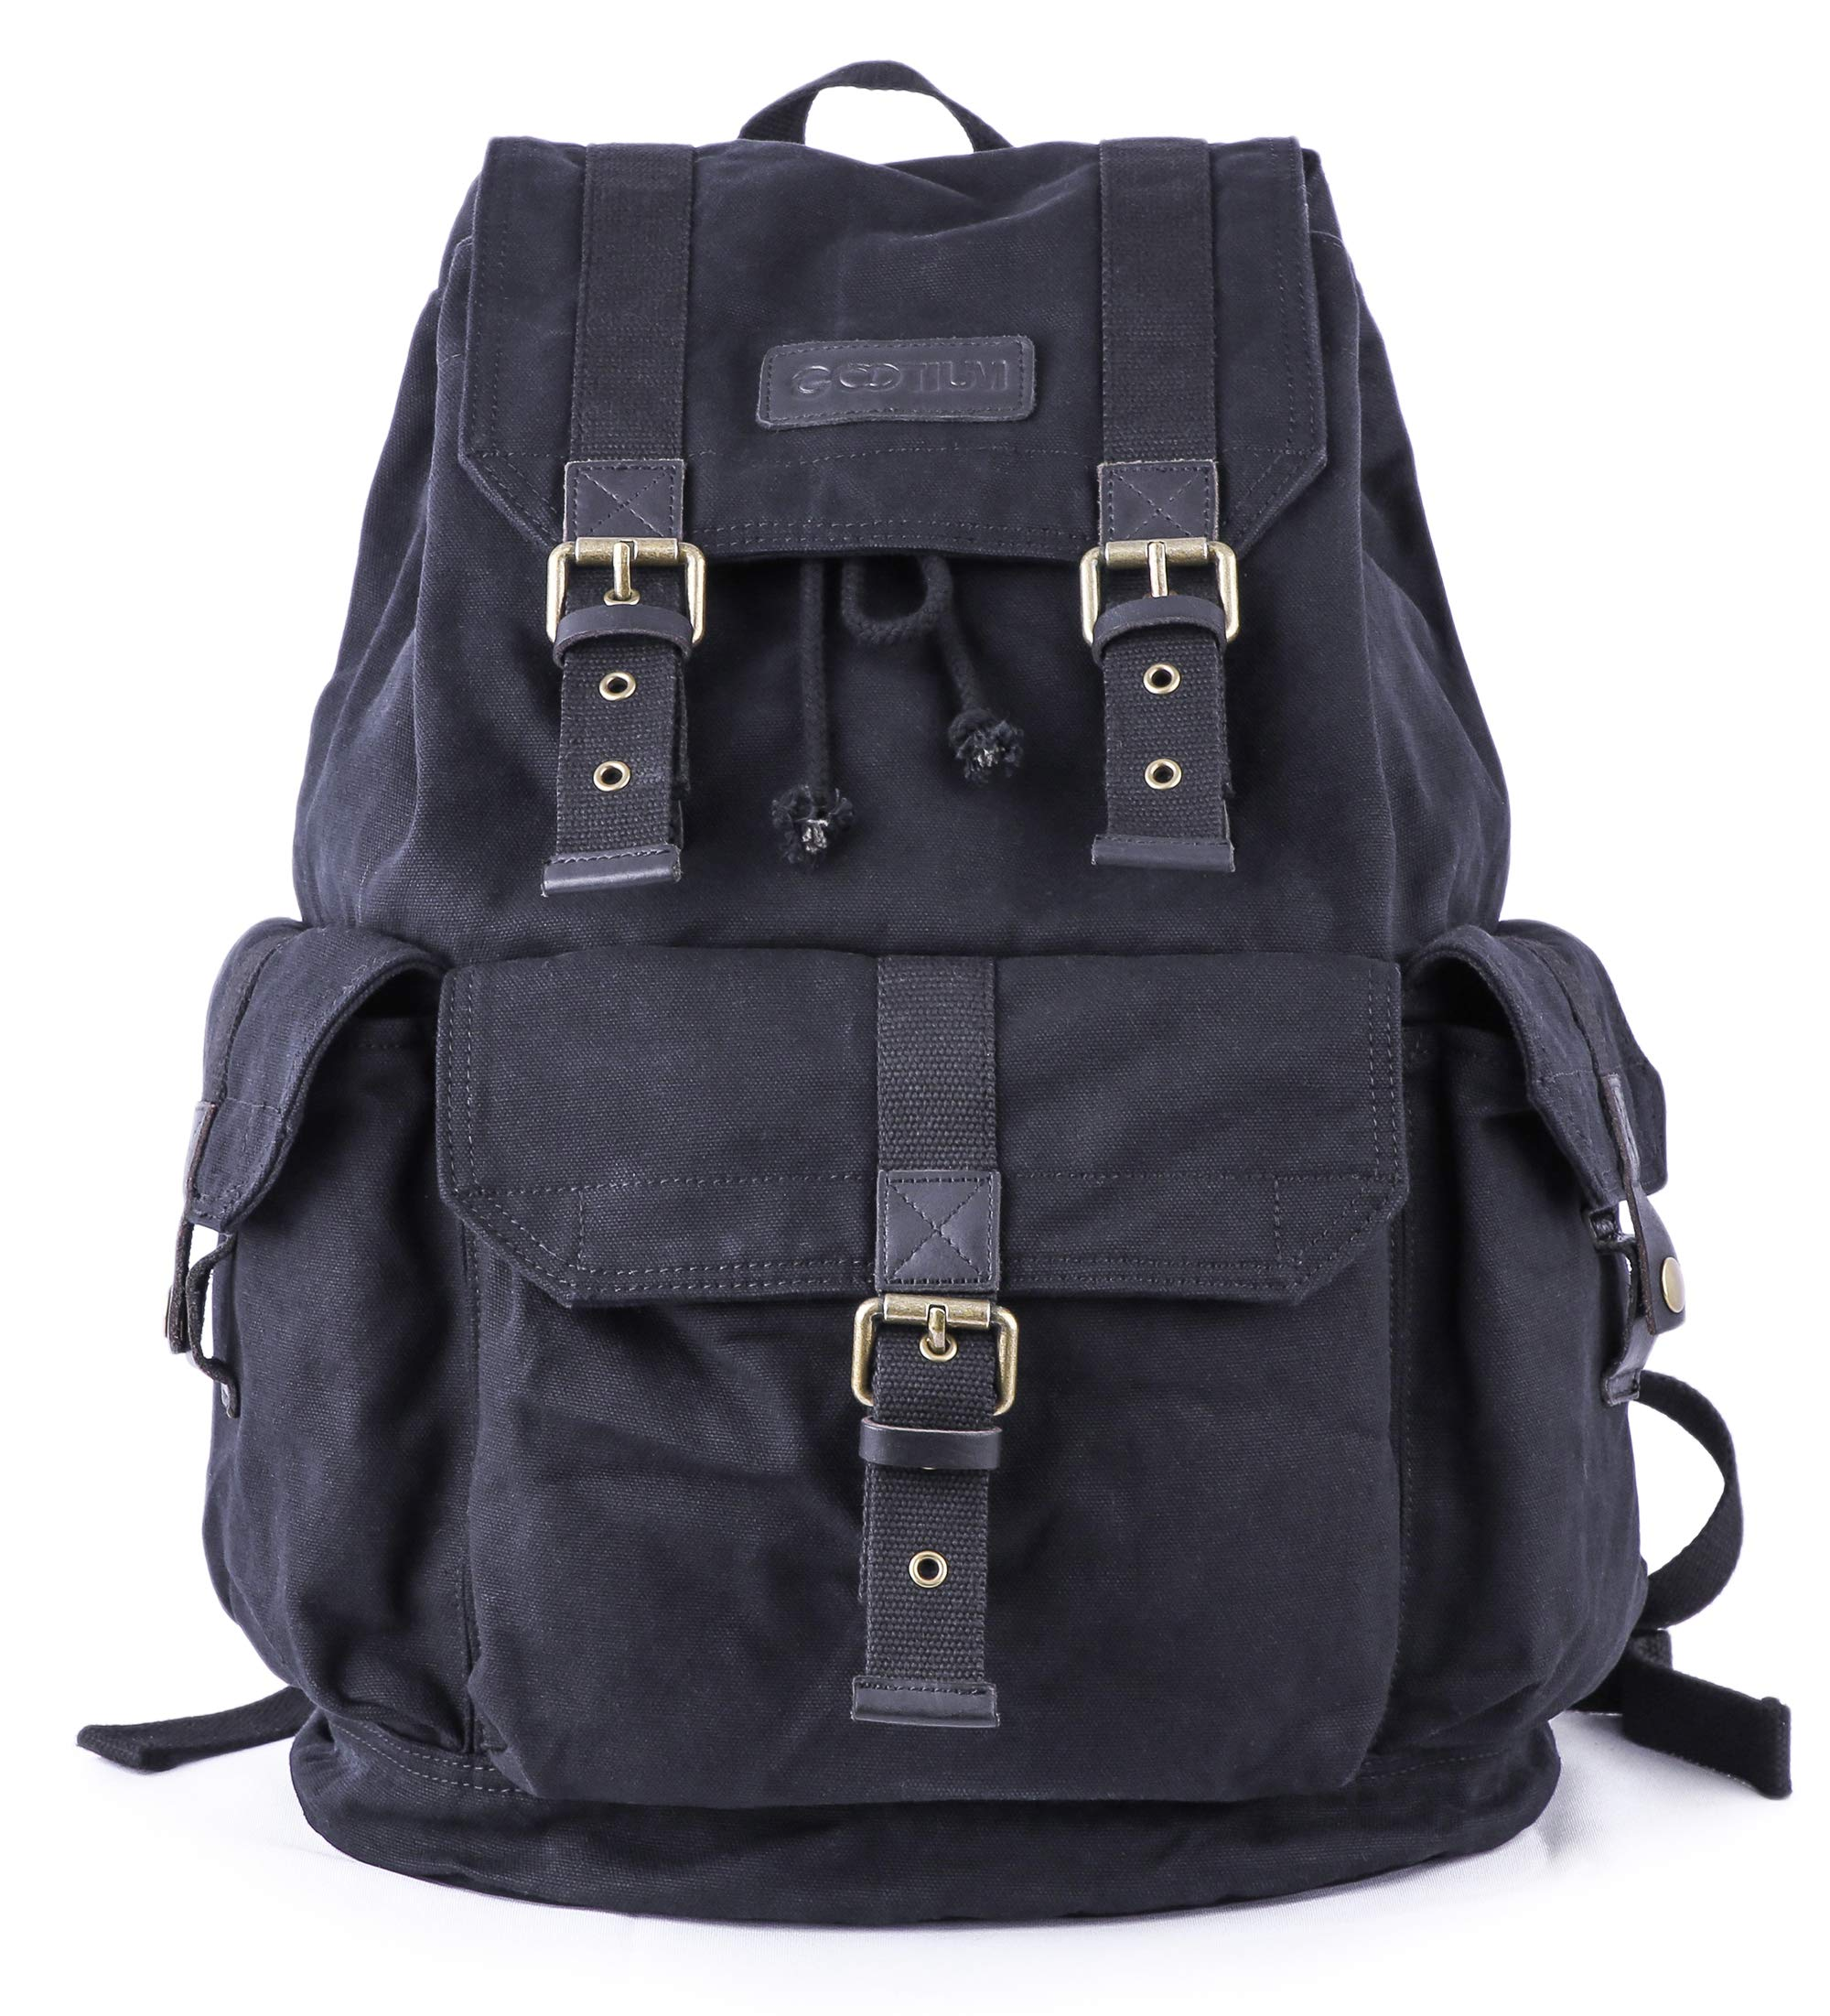 Gootium 21101BLK Specially High Density Thick Canvas Backpack Rucksack,Black